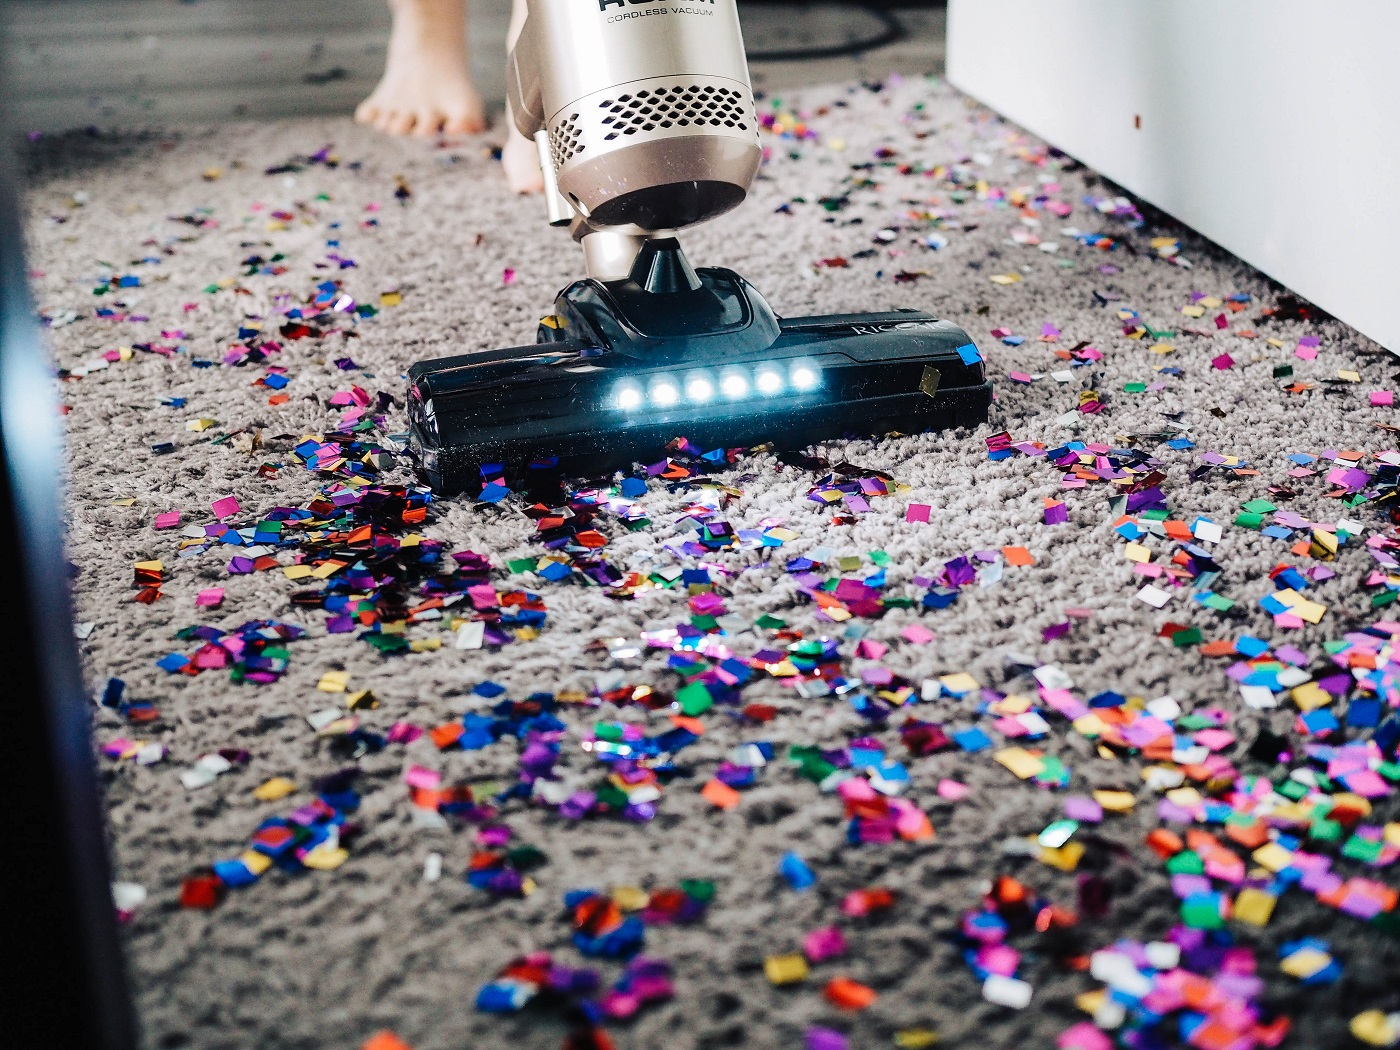 An in-depth review of the best stick vacuums available in 2019.